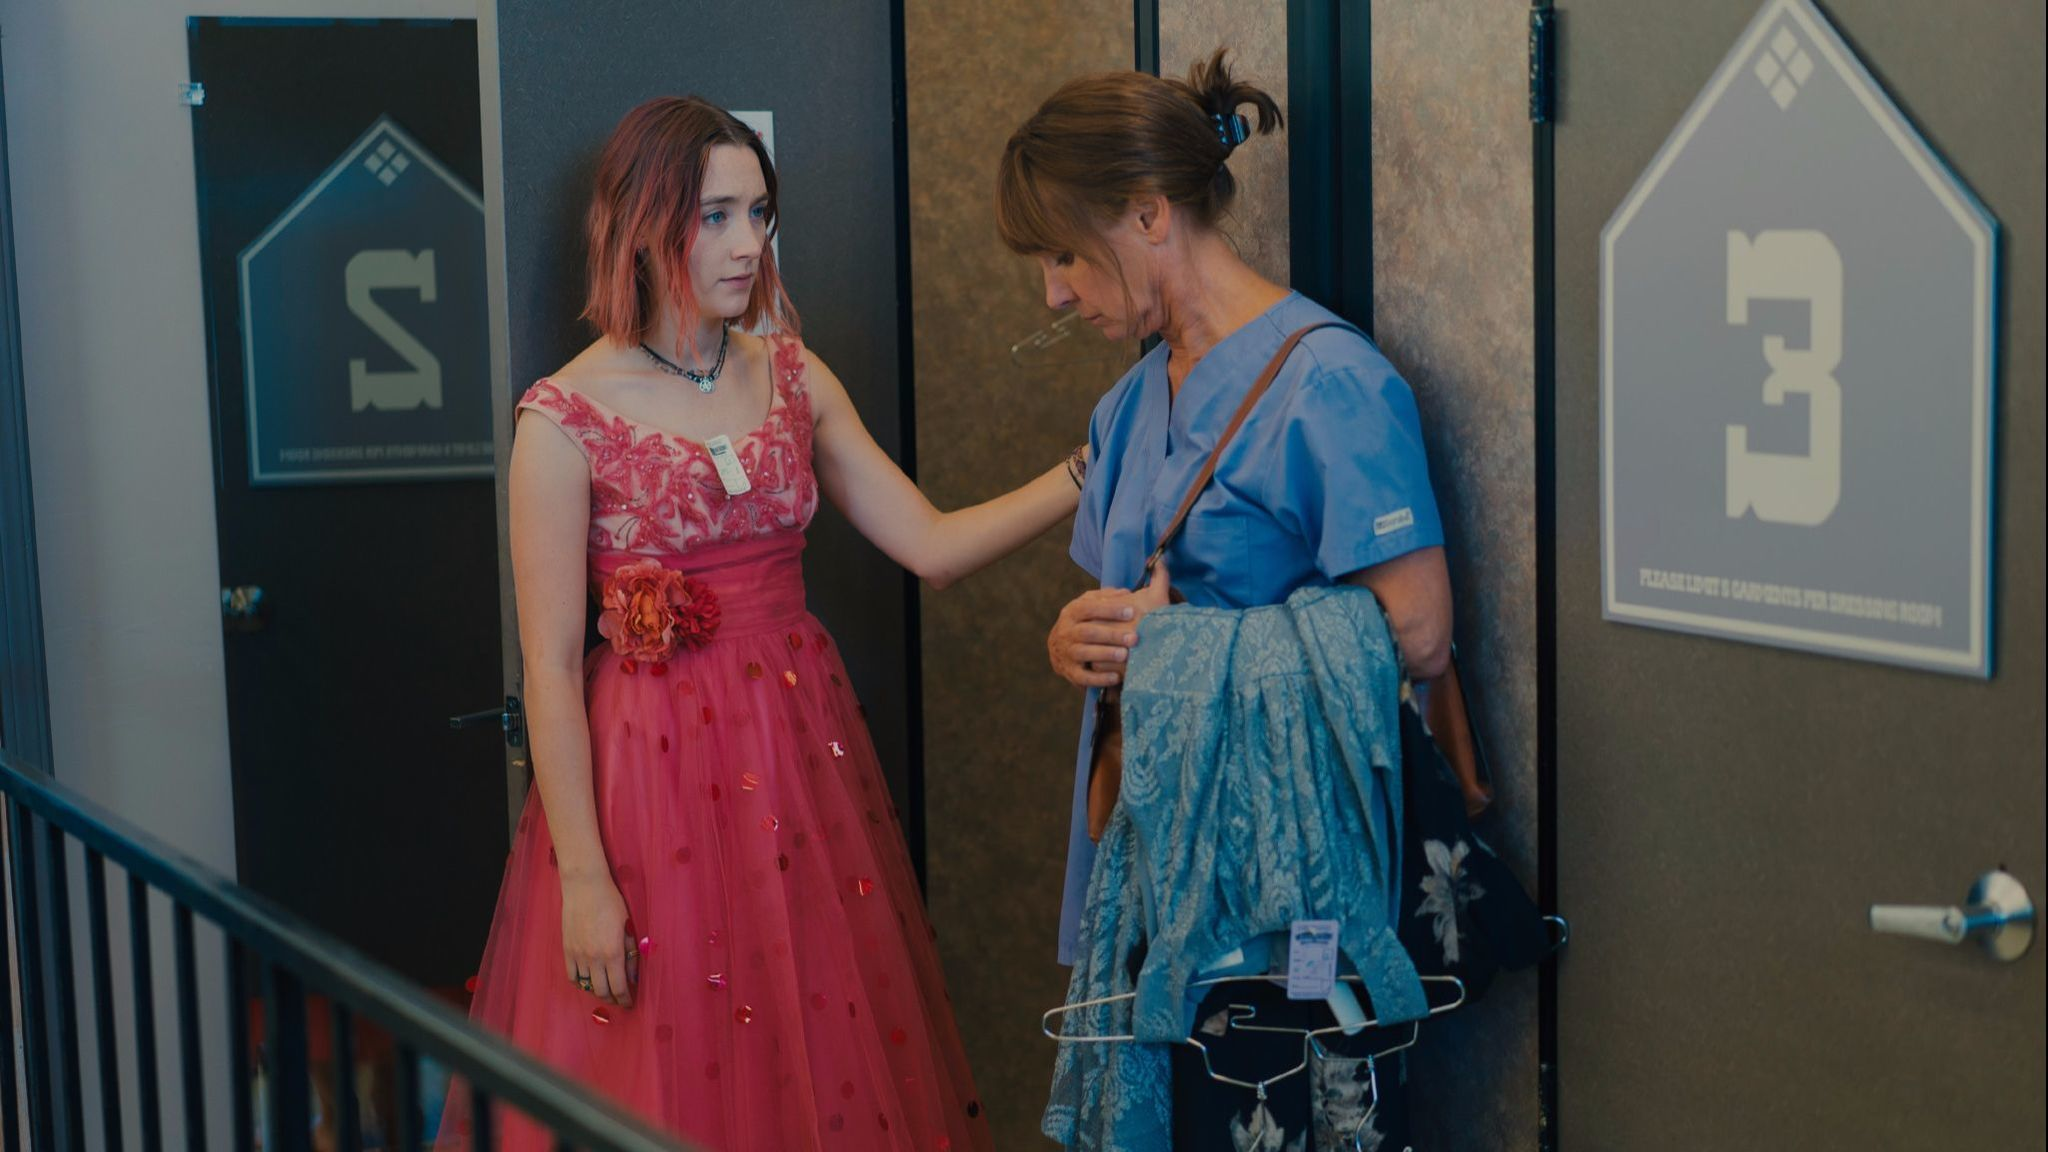 """In """"Lady Bird,"""" Saoirse Ronan portrays an independent high school senior who yearns to escape her hometown of Sacramento and a stormy relationship with her mother, played by Laurie Metcalf."""